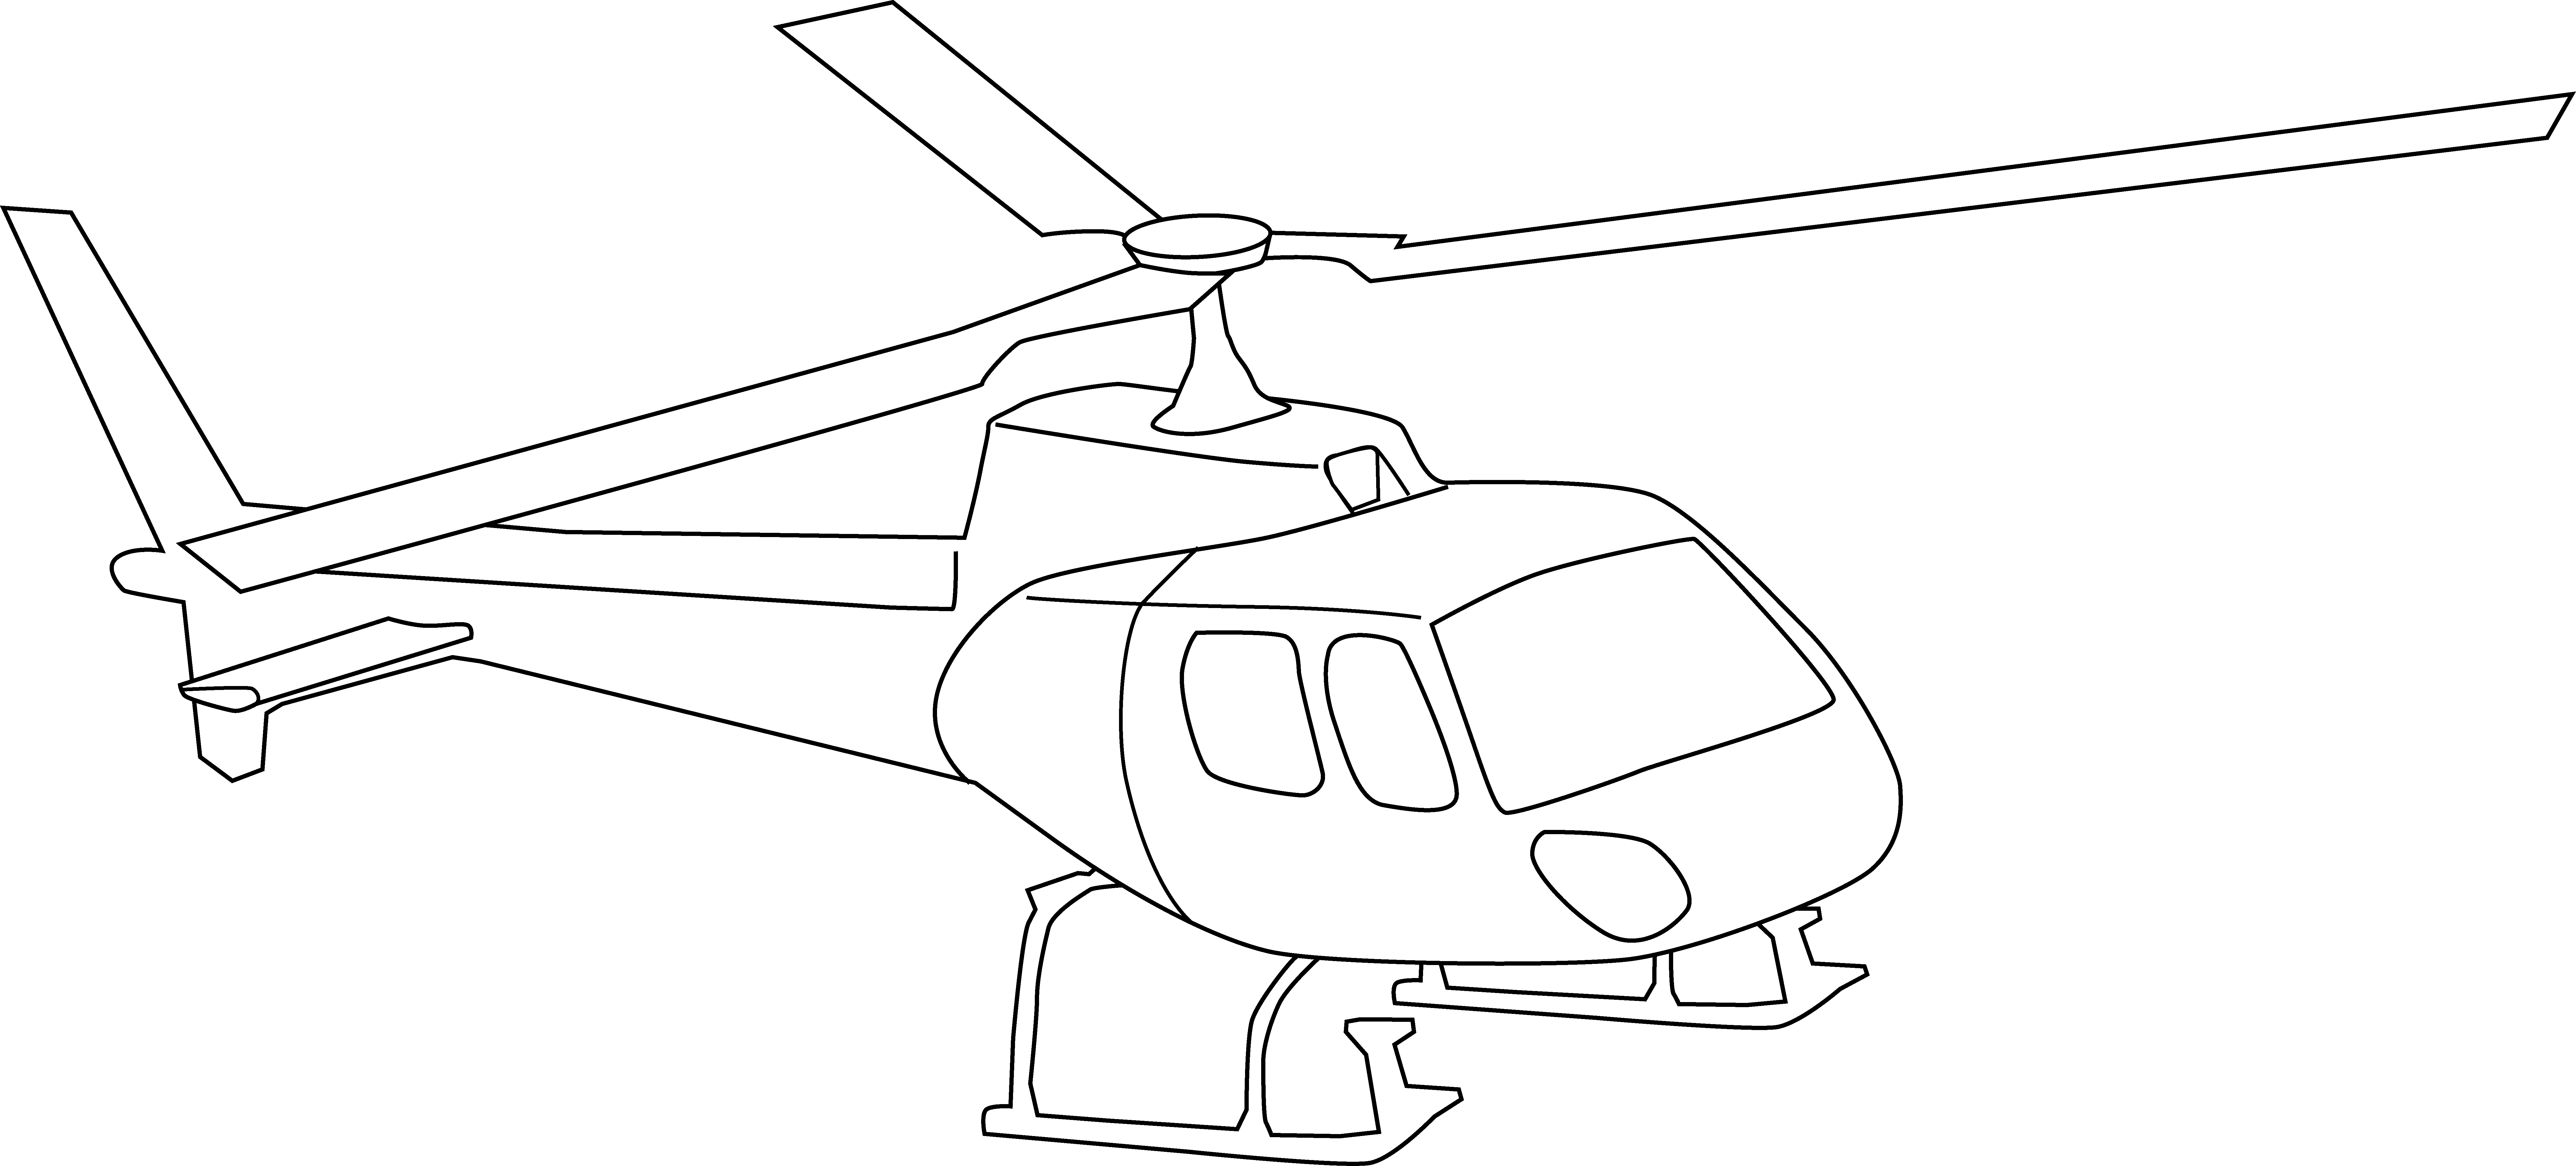 drawing helicopters air ambulance